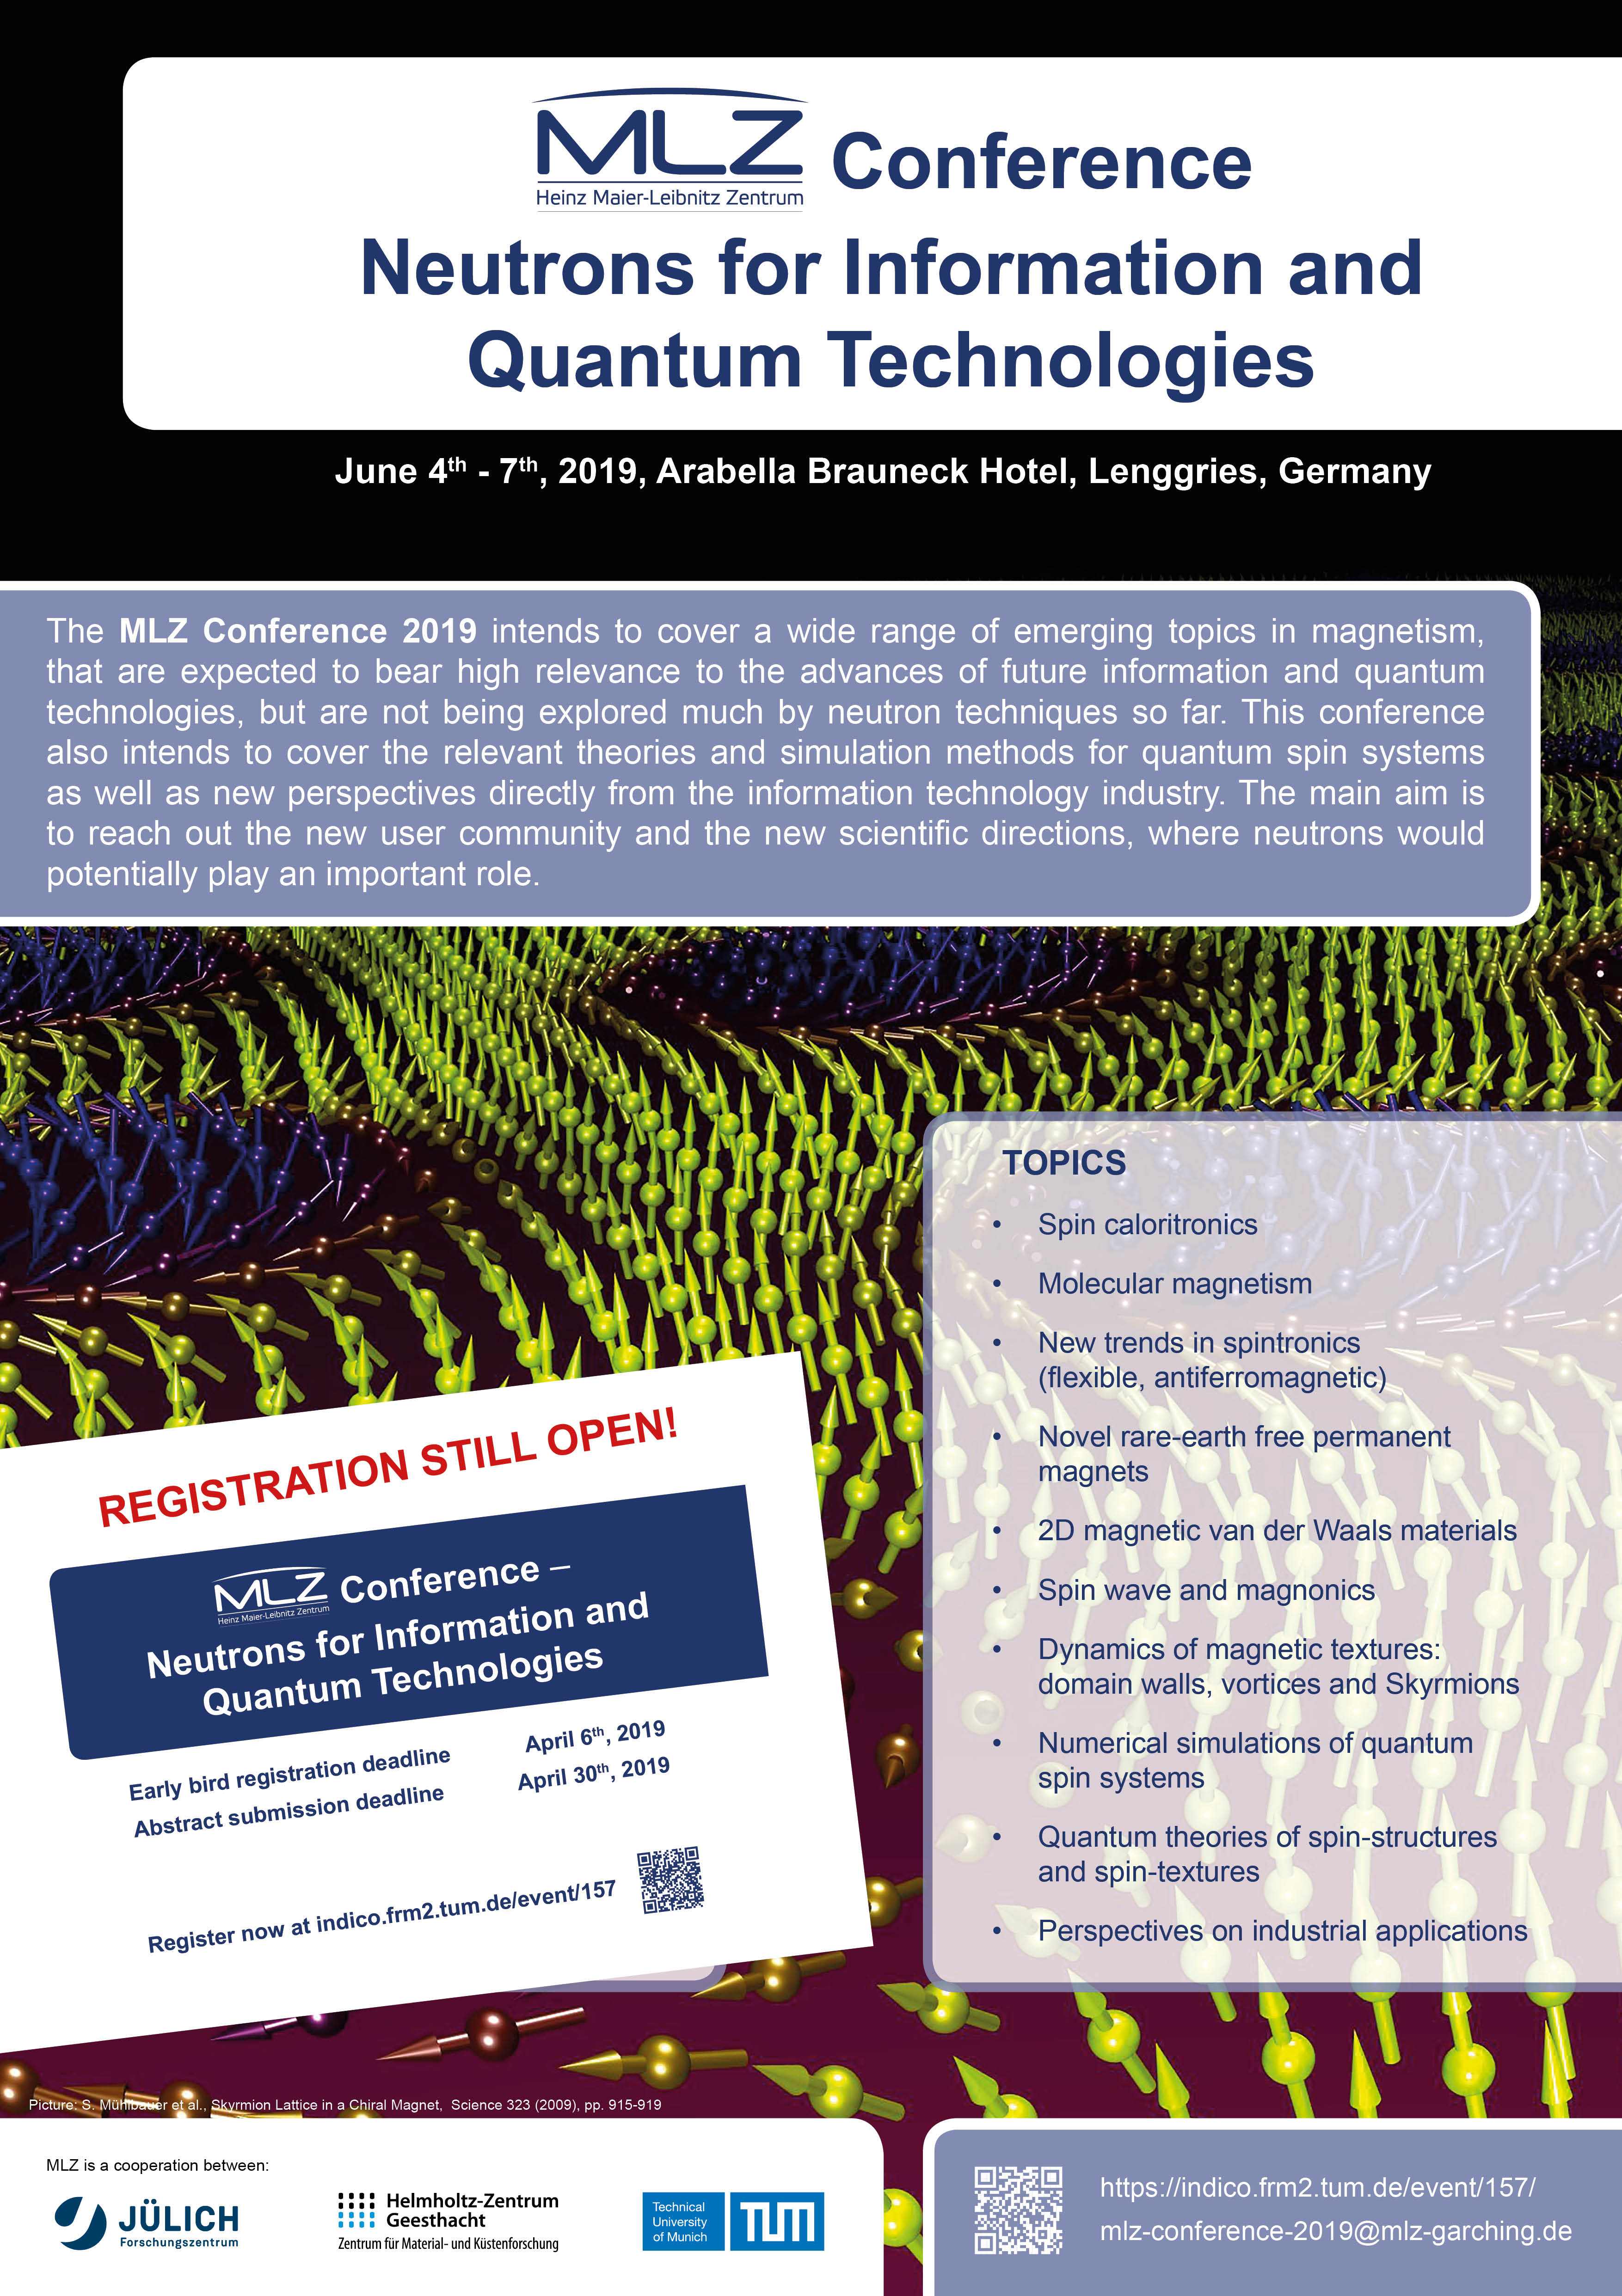 MLZ Conference: Neutrons for information and quantum